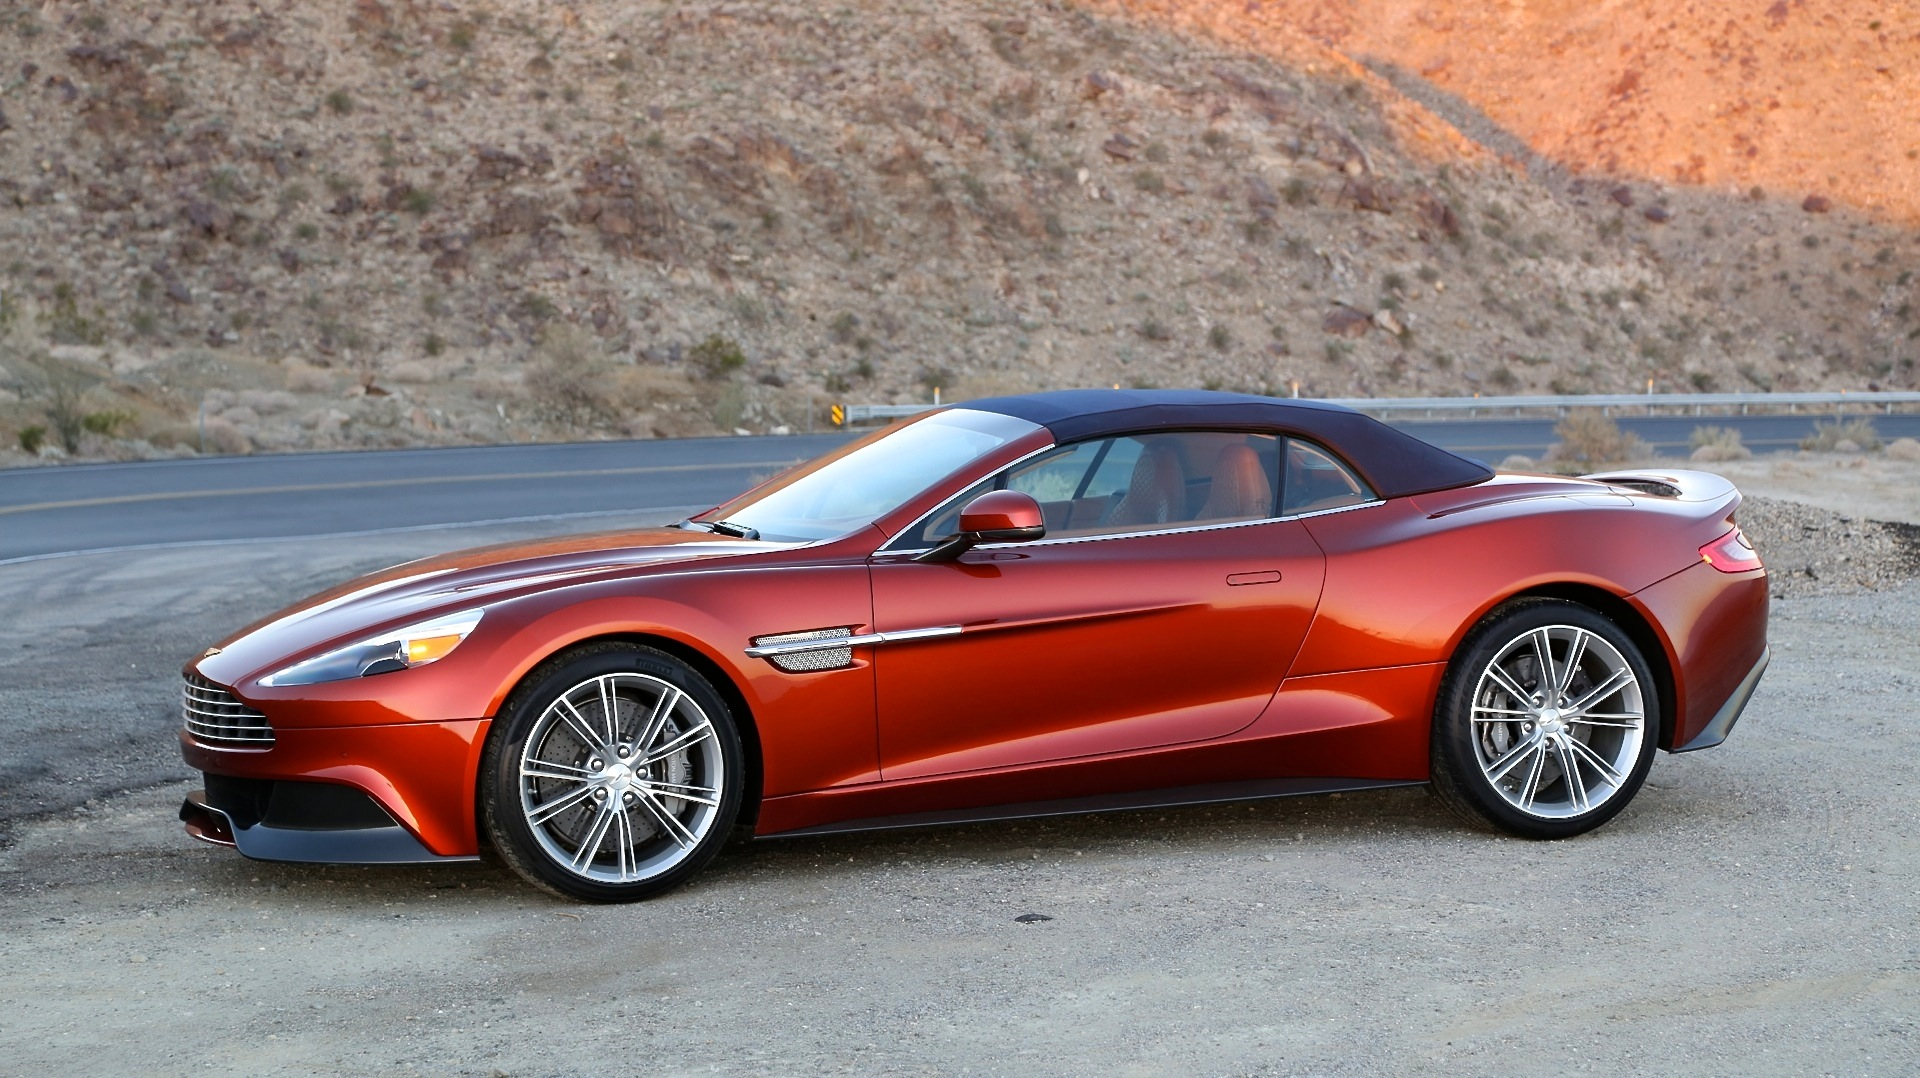 2014 aston martin vanquish review and news motorauthority. Black Bedroom Furniture Sets. Home Design Ideas